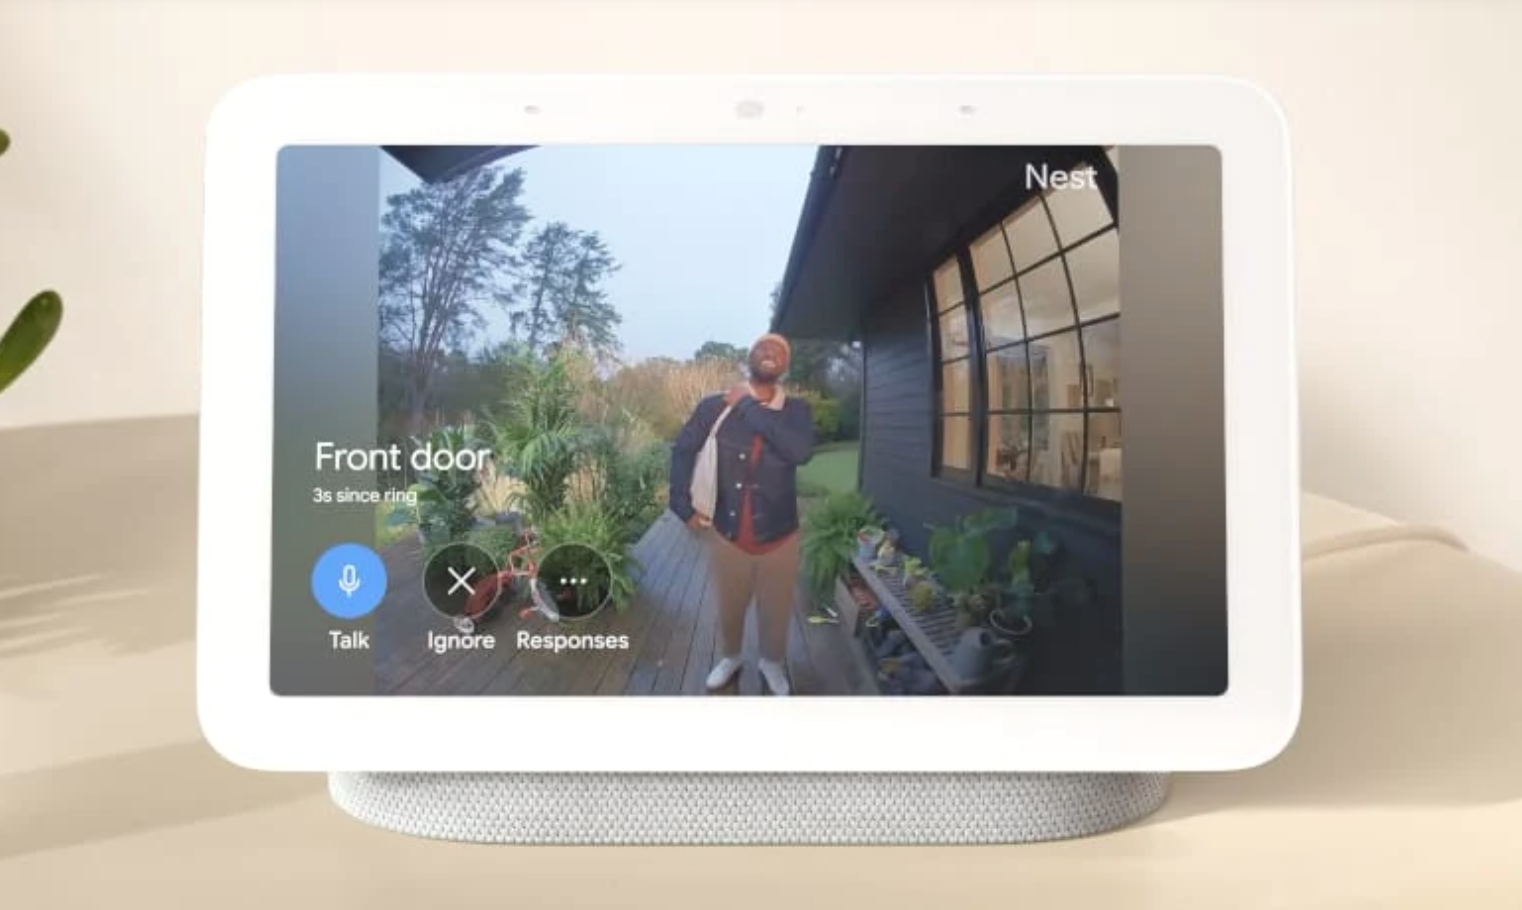 image of the Google Nest Hub 2nd Gen displaying a feed from a video doorbell